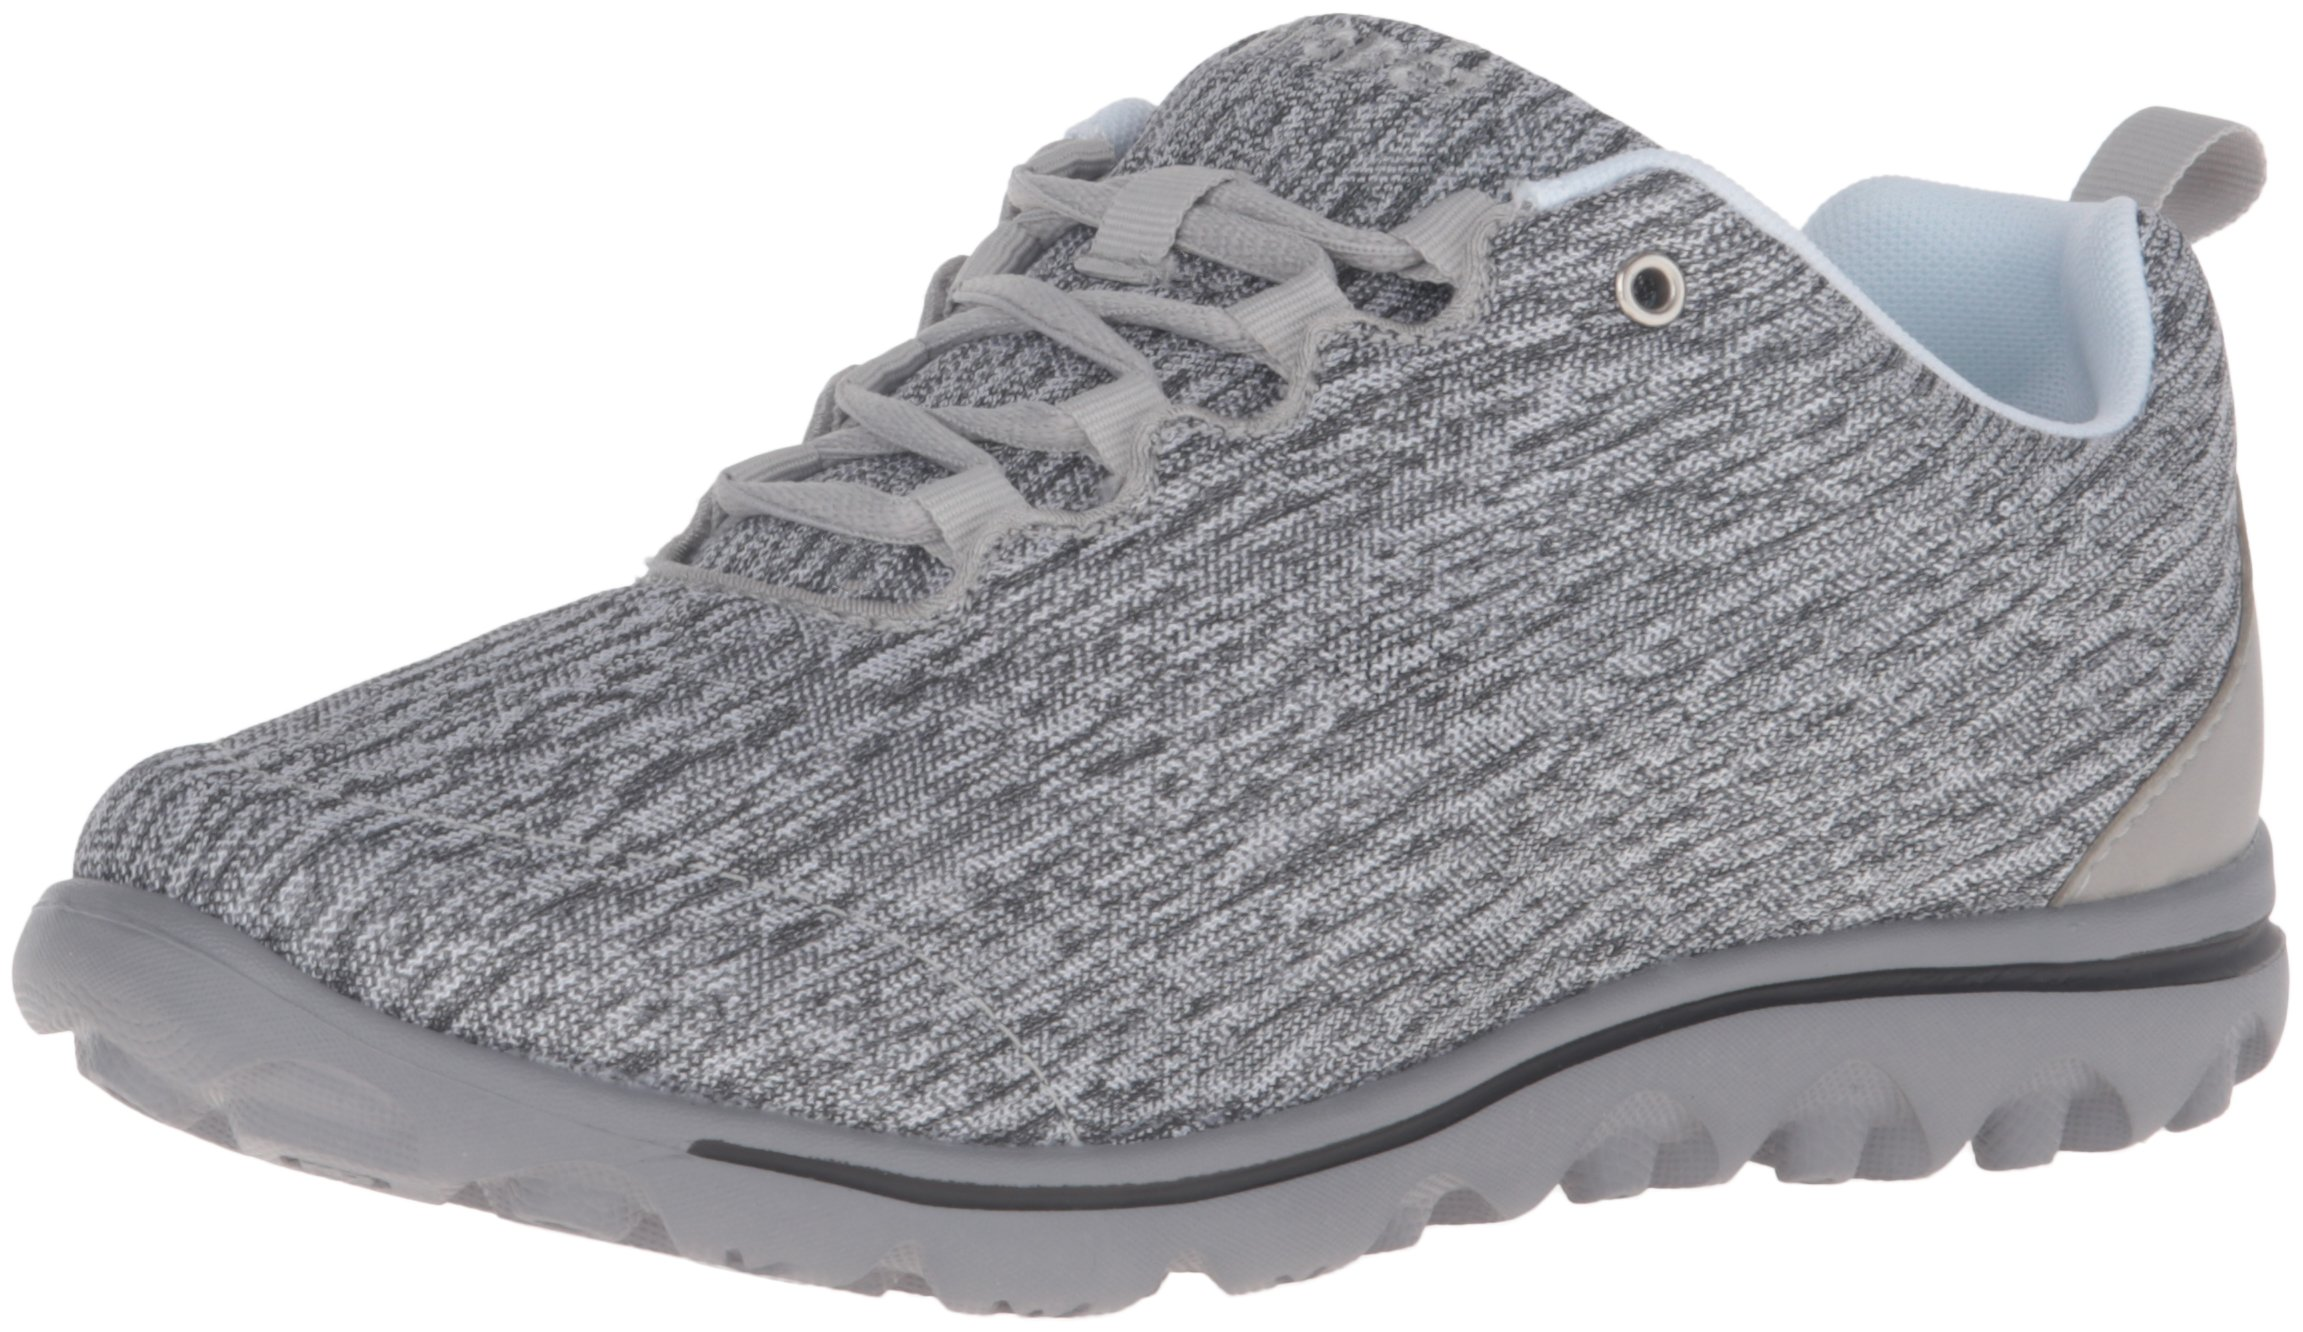 Propet Women's TravelActiv Oxford, Black/White Heather, 8.5 Wide US